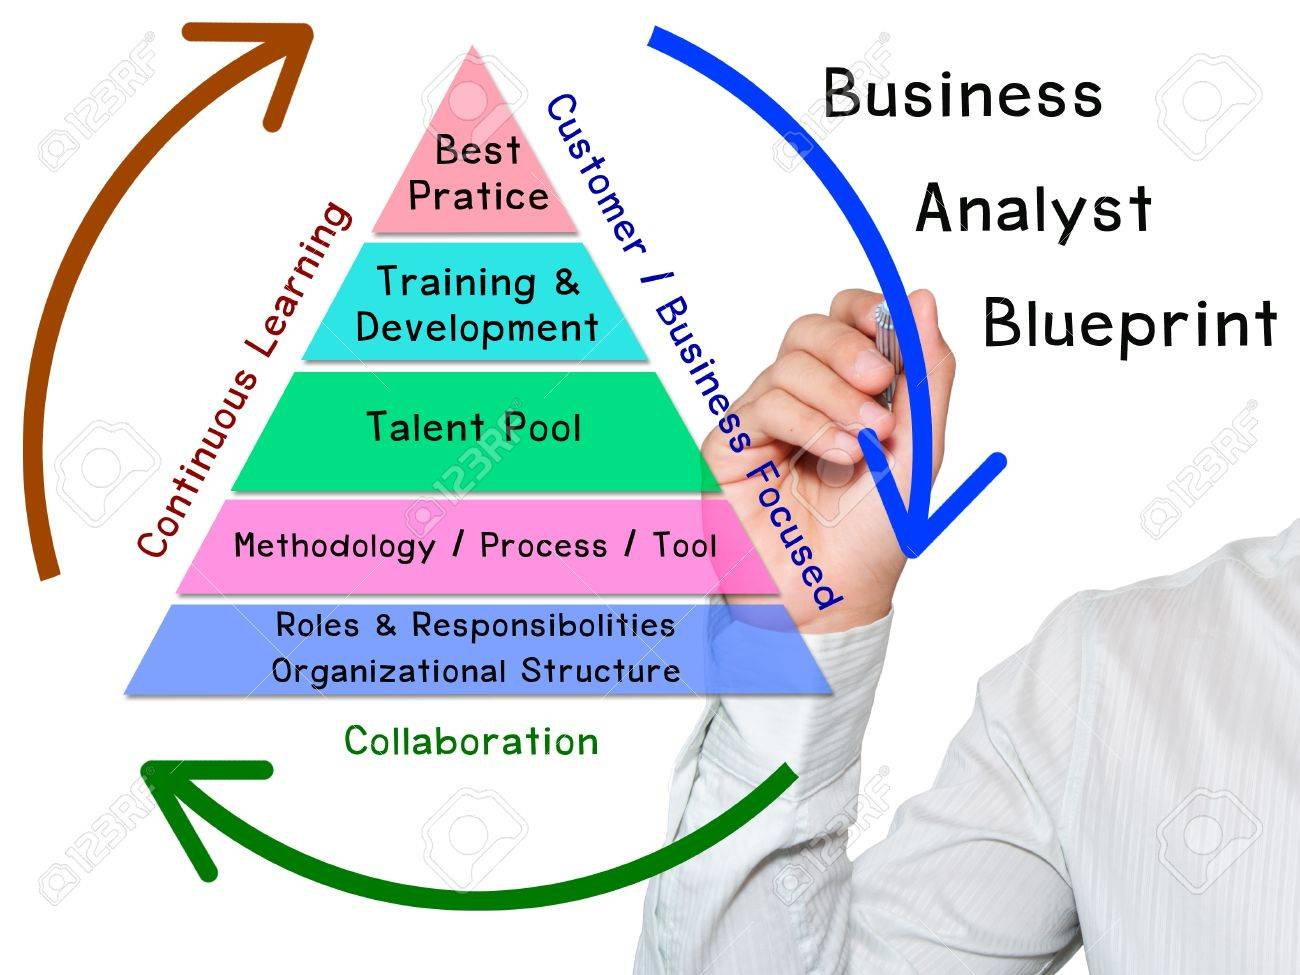 Hand write business analyst blueprint stock photo picture and hand write business analyst blueprint stock photo 10701705 malvernweather Image collections